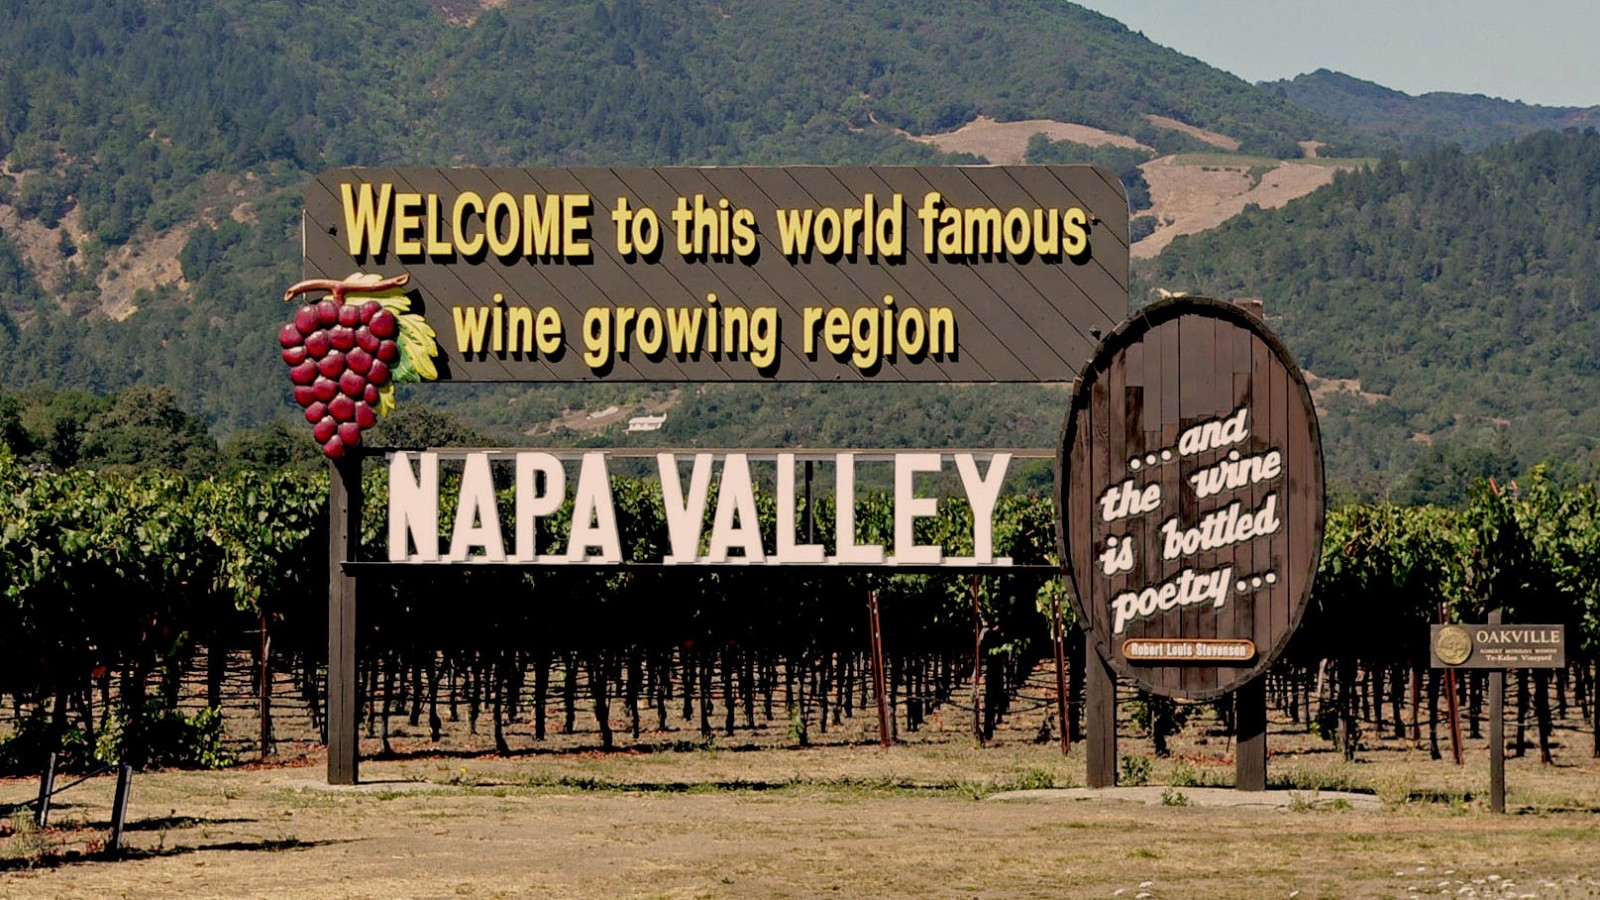 Welcome to world famous Napa Valley